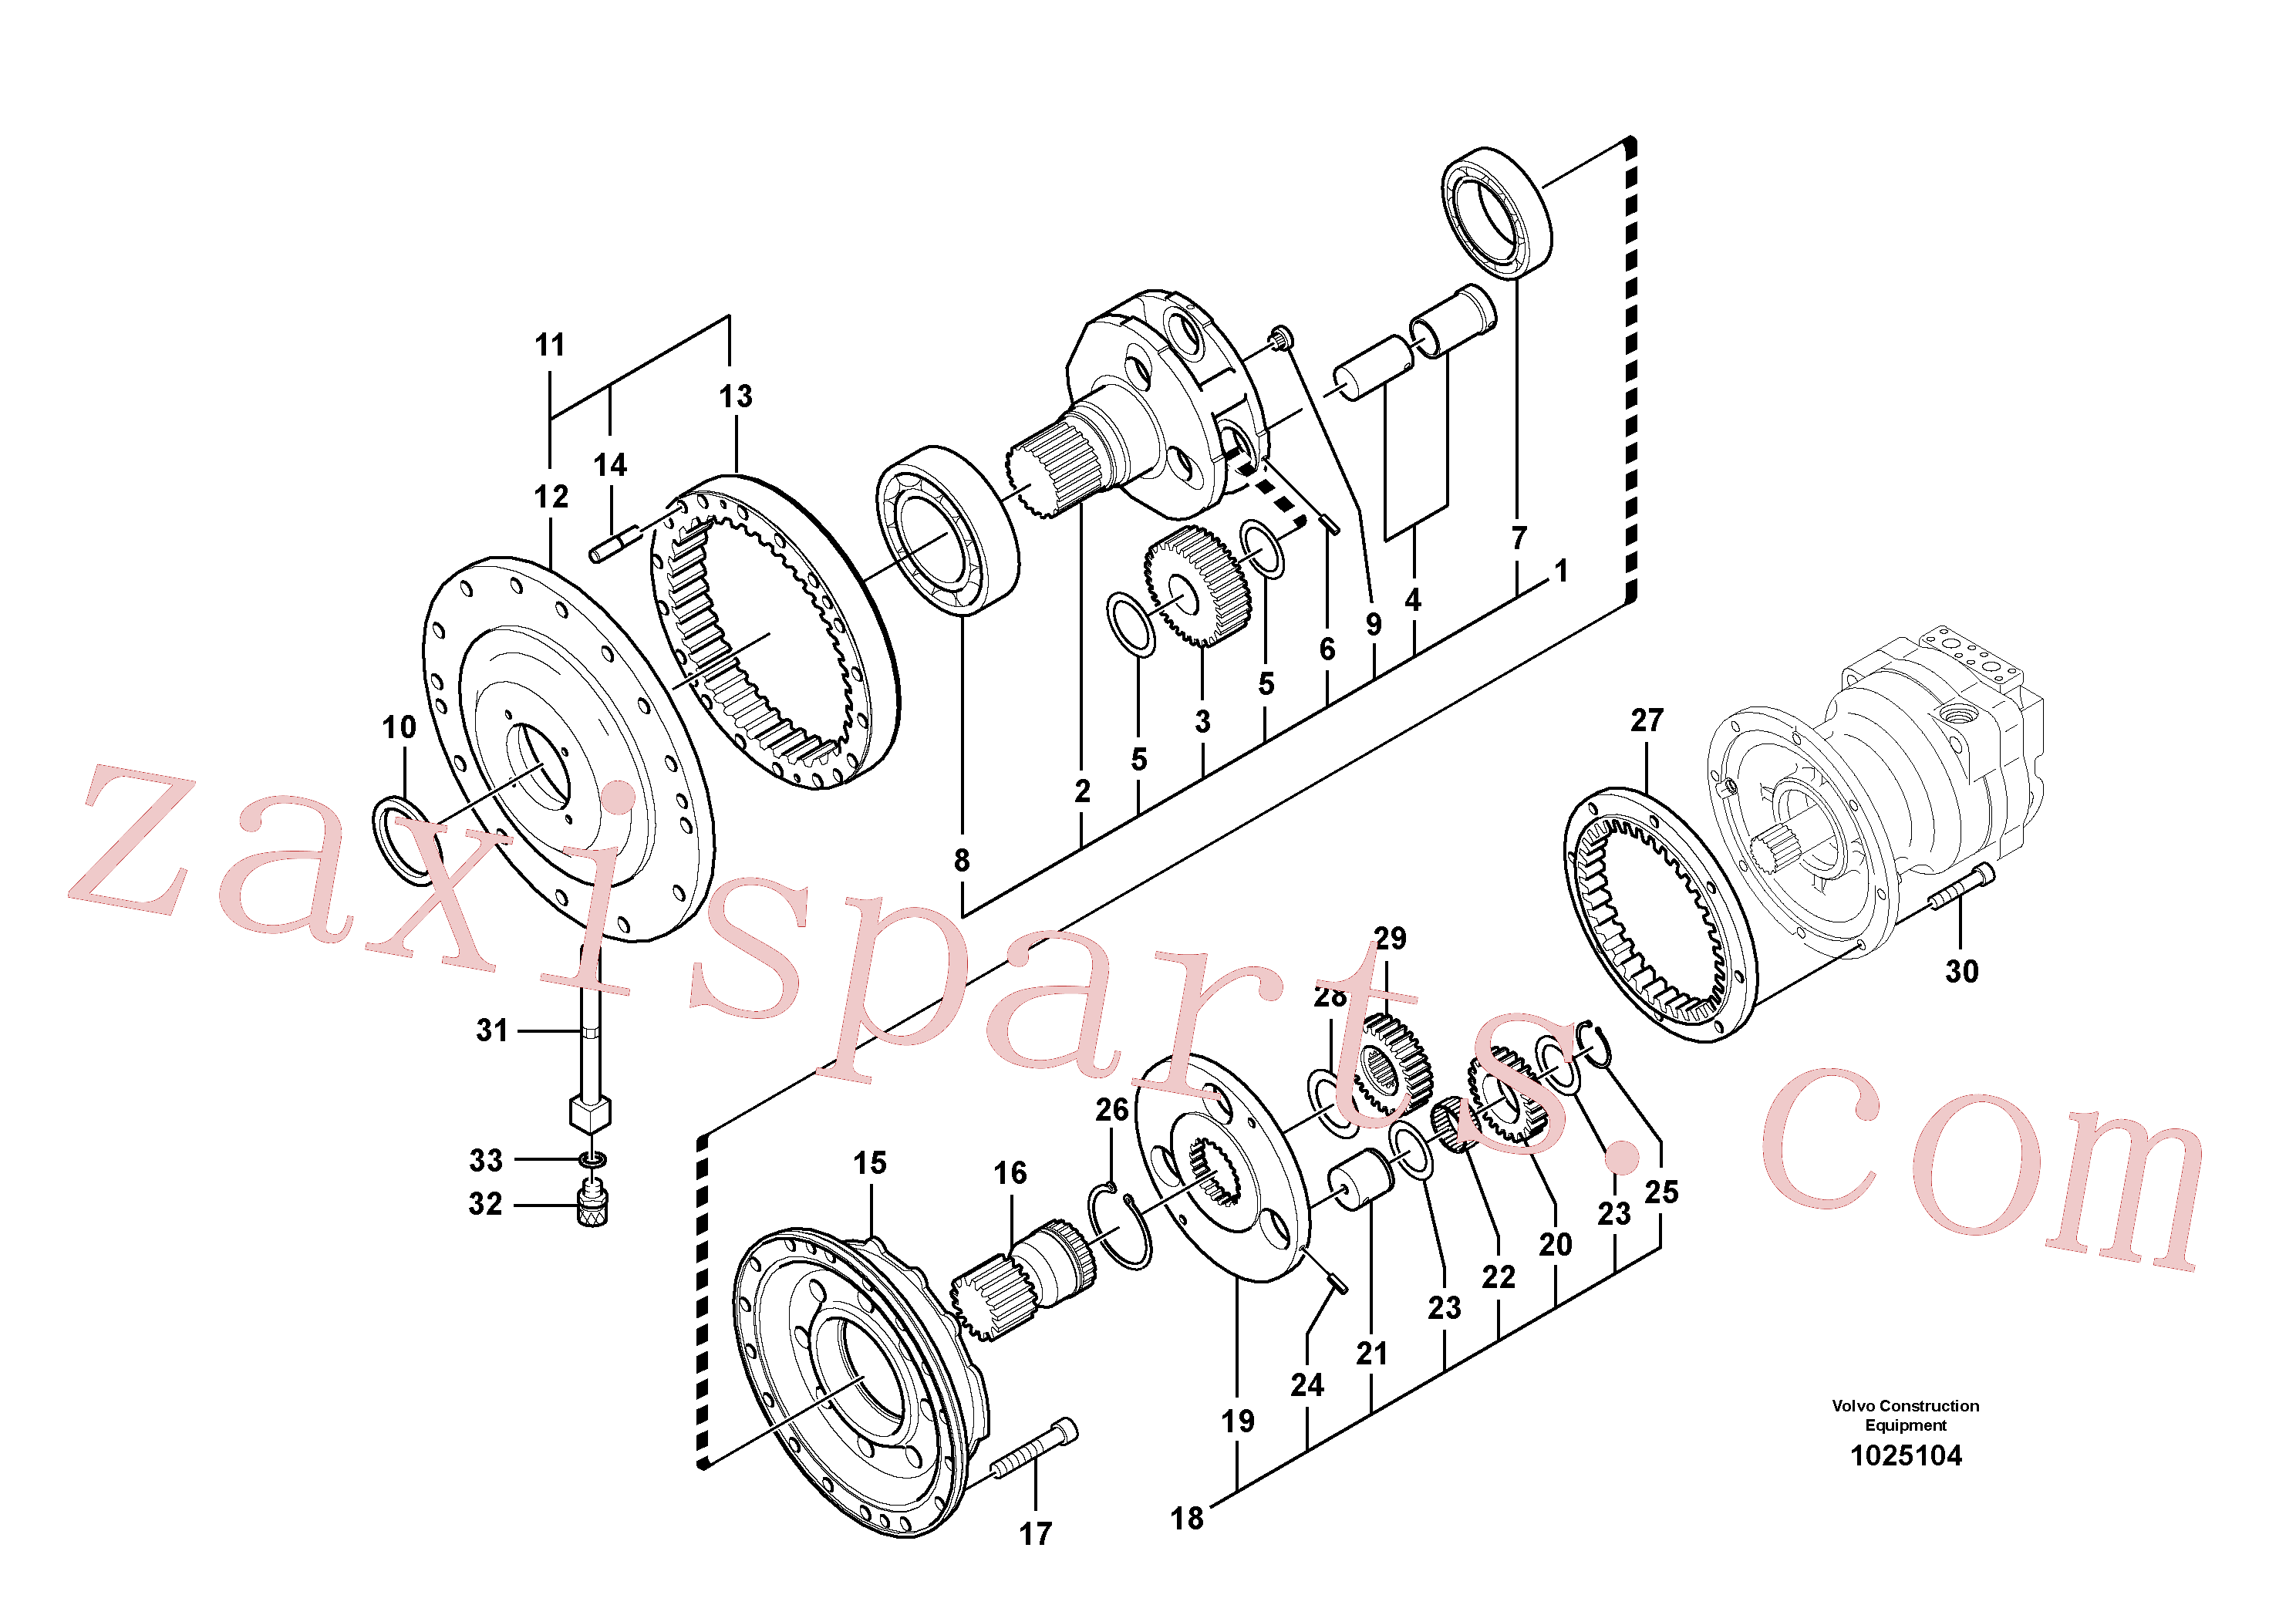 VOE14526227 for Volvo Swing gearbox(1025104 assembly)